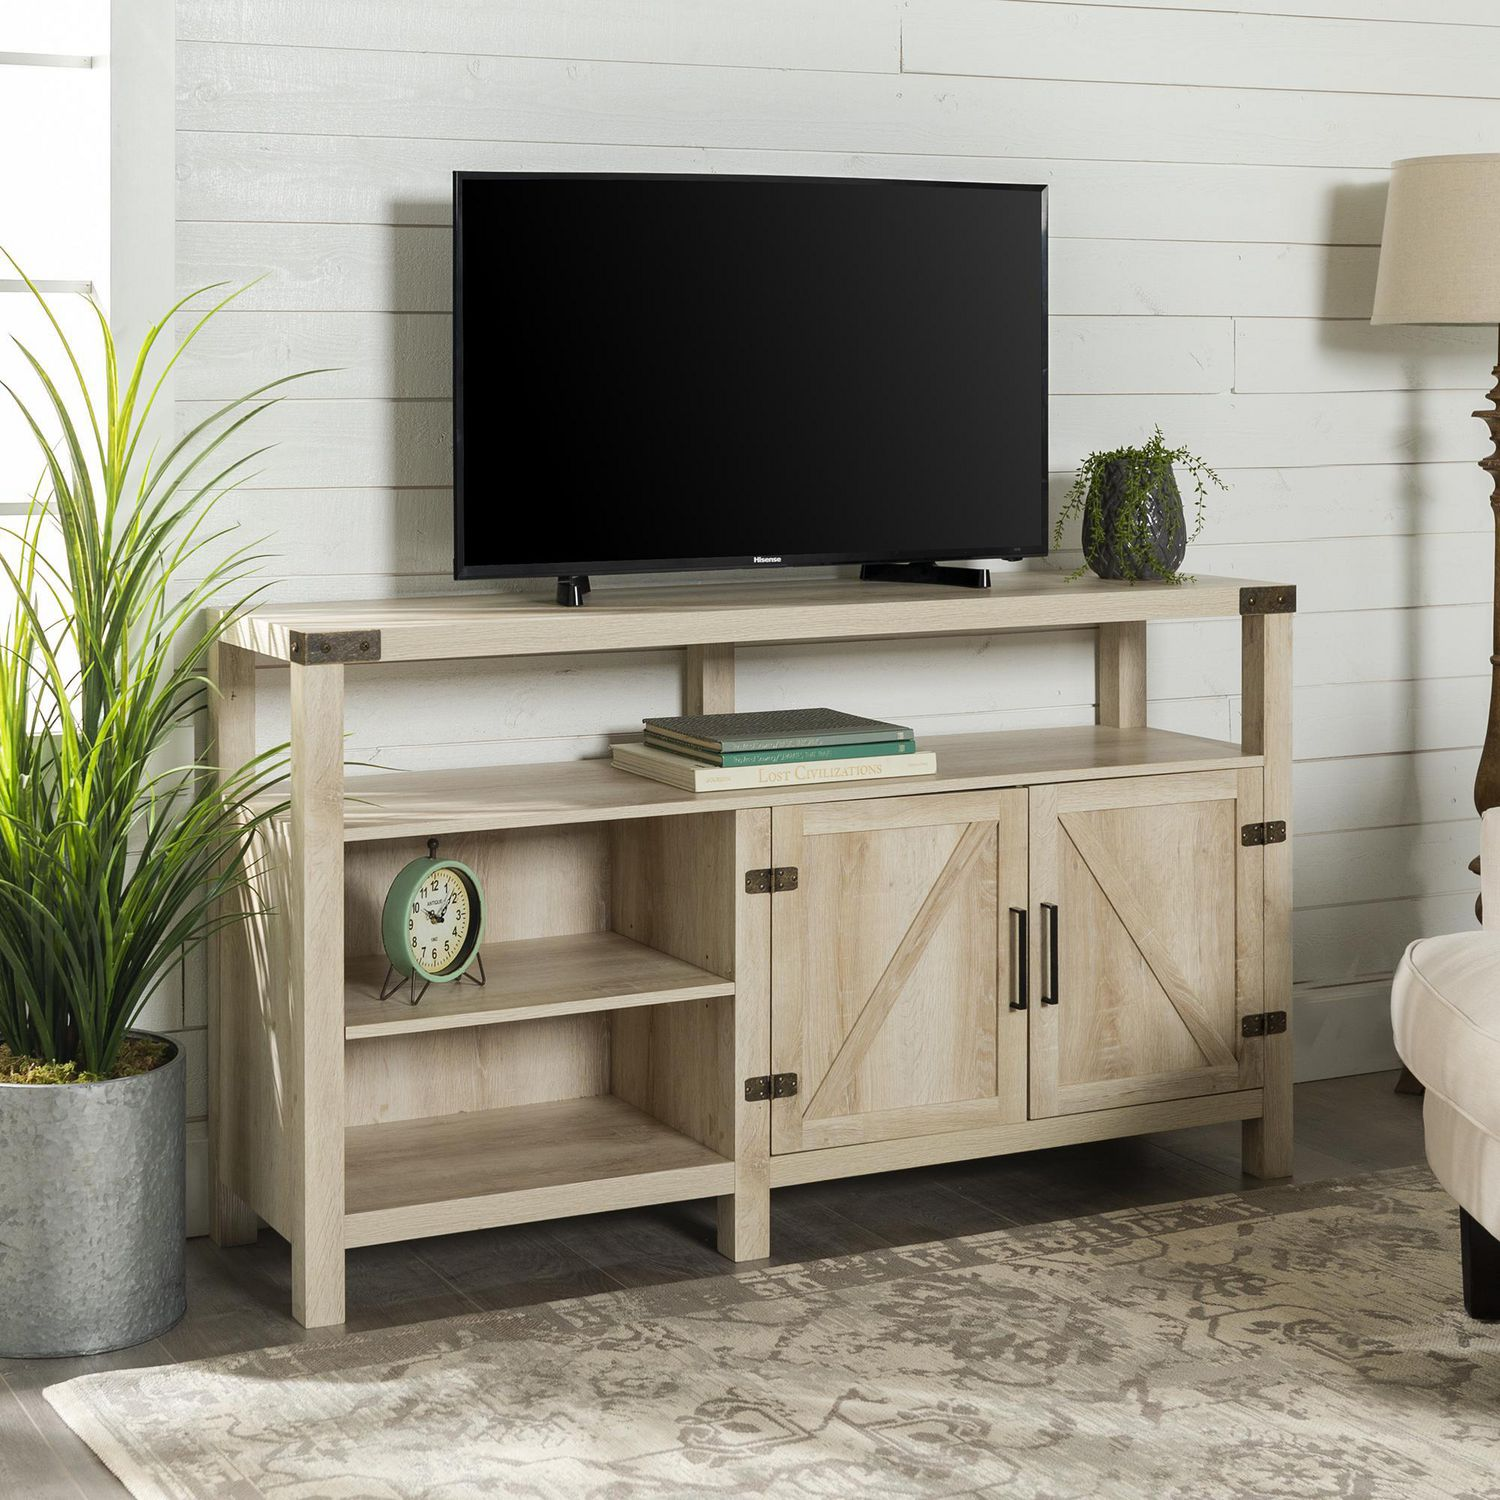 Manor Park Tall Modern Farmhouse Barn Door Tv Stand For Tv S Up To 64 Multiple Finishes